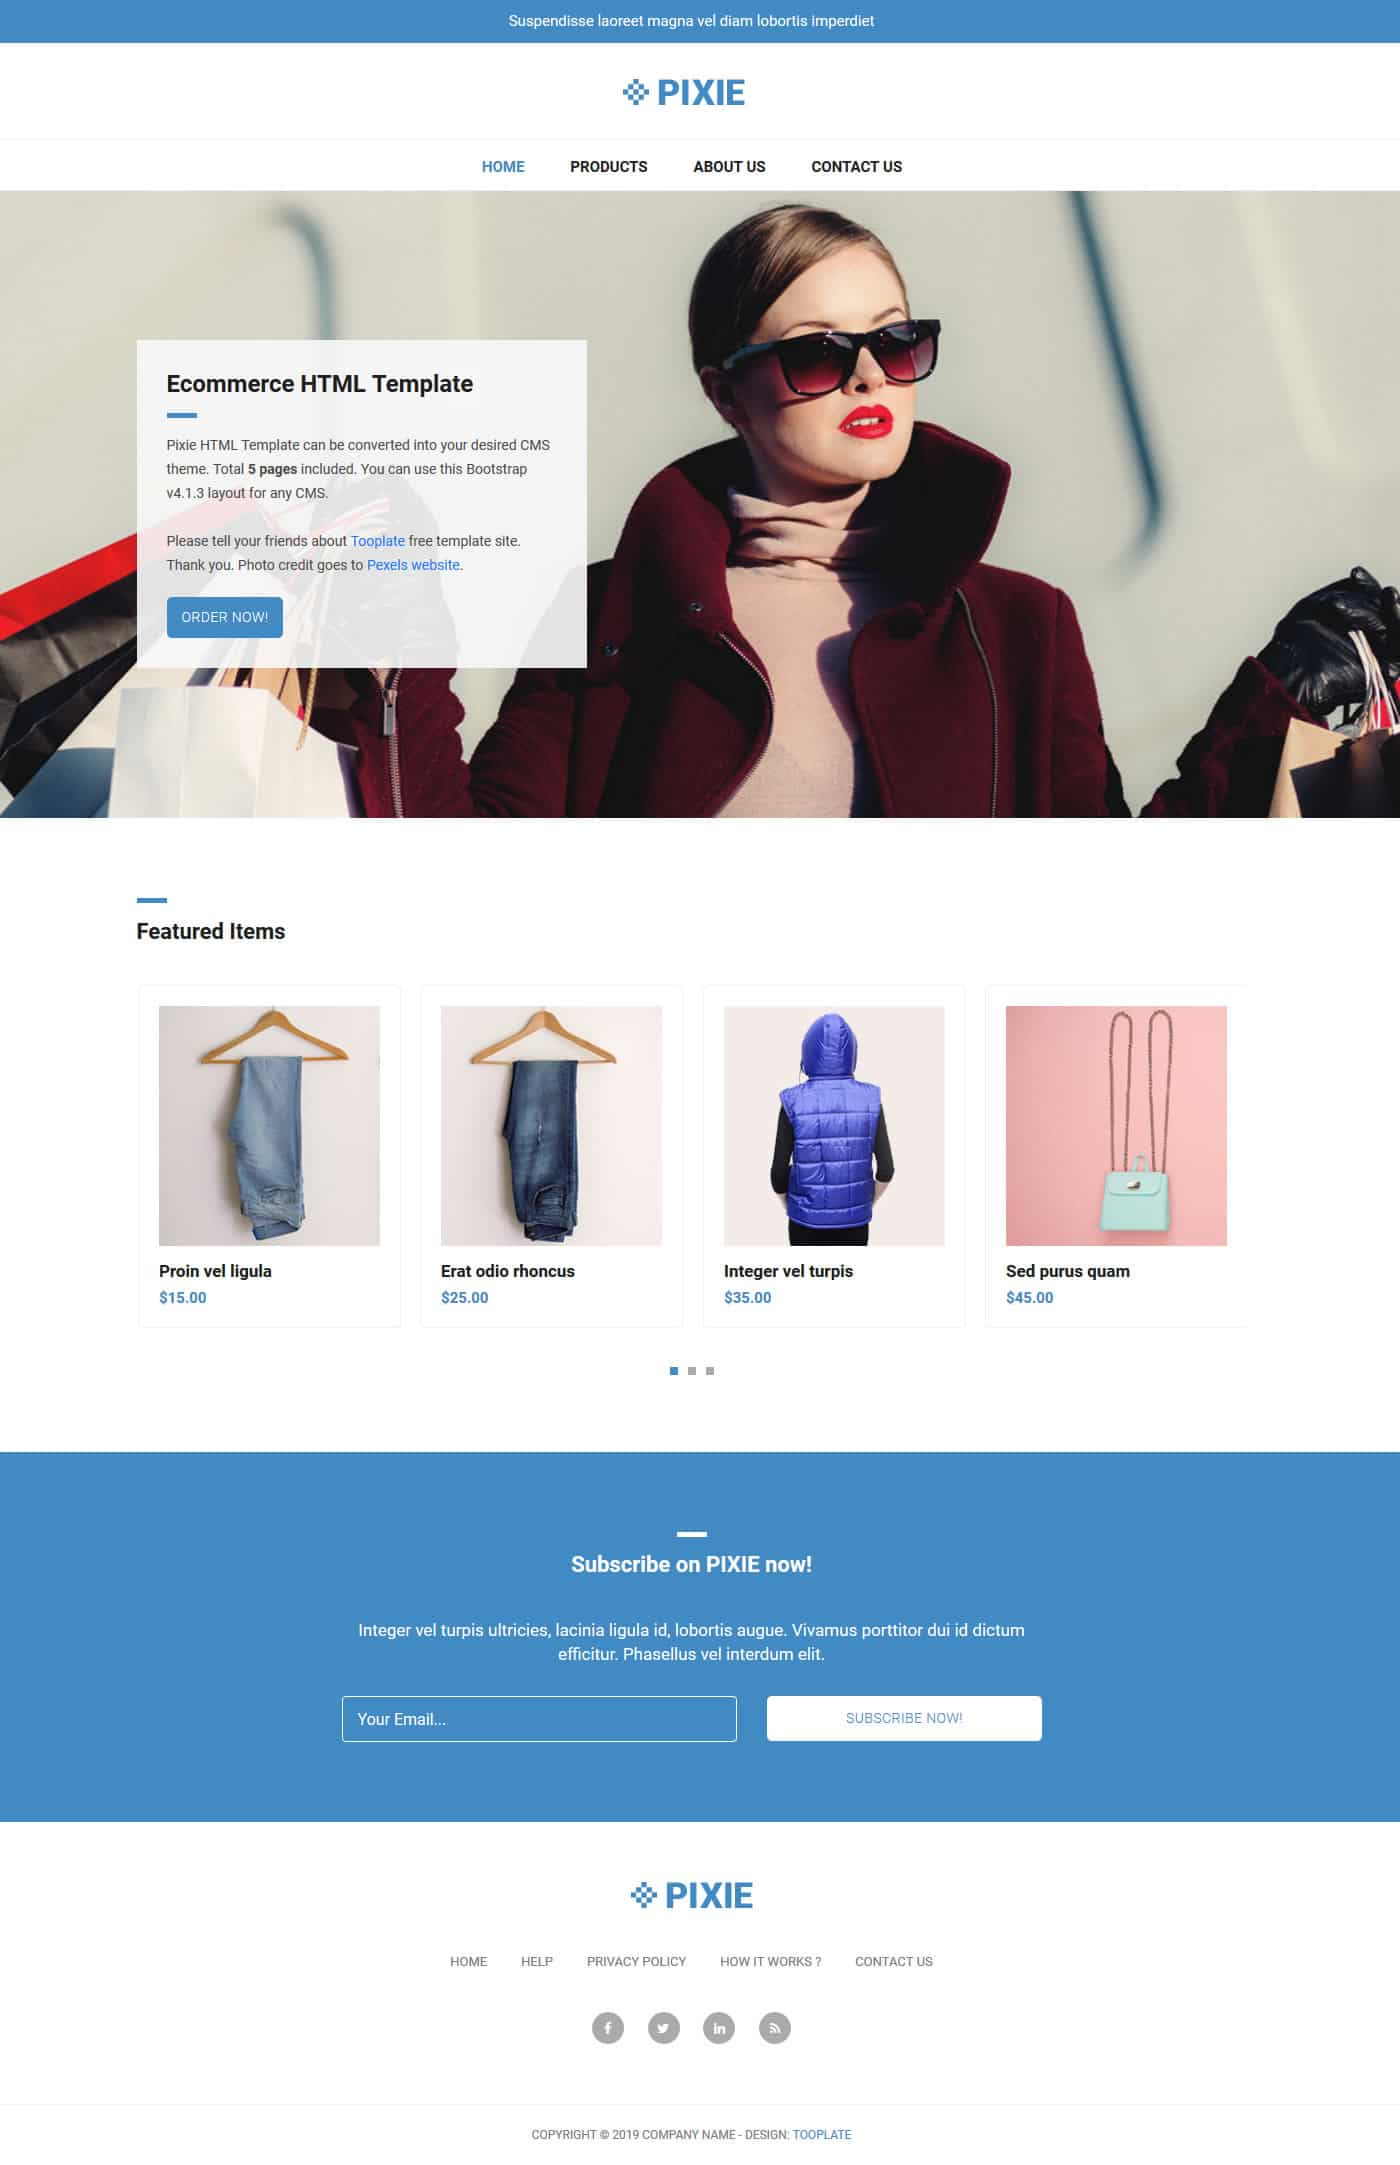 Pixie Ecommerce HTML Template